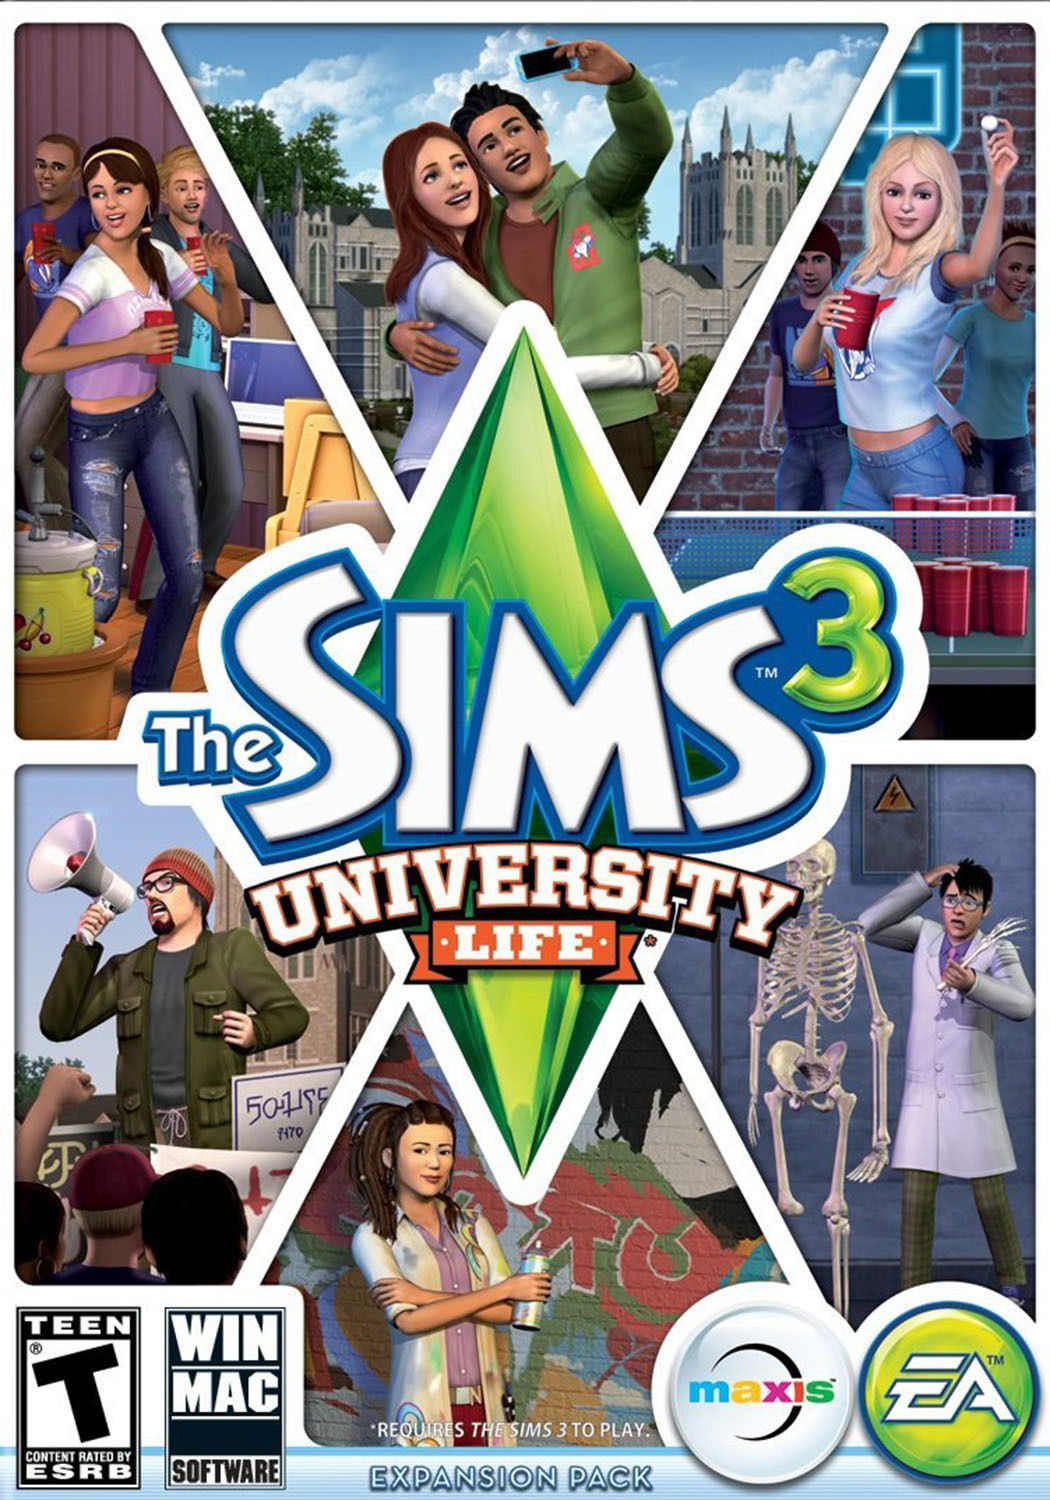 THE SIMS 3 UNIVERSITY LIFE EXPANSION PACK